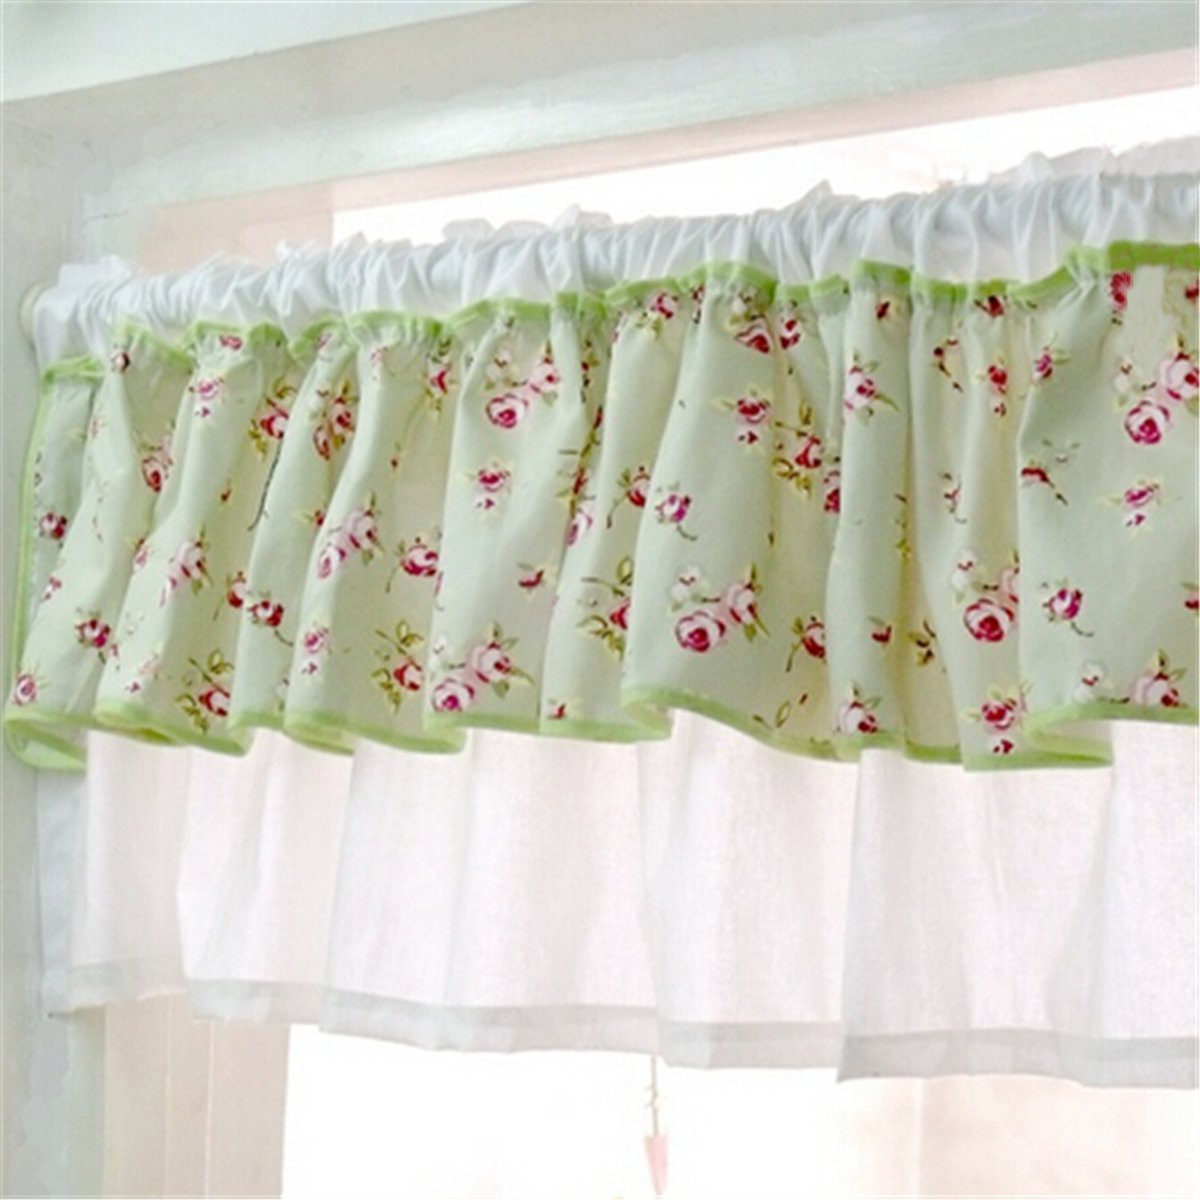 Green bedroom curtains - Pastoral Green Cloth Flower Print Window Curtain Sheer Valance Door Curtains Drape Veil Panel Rod Bedroom